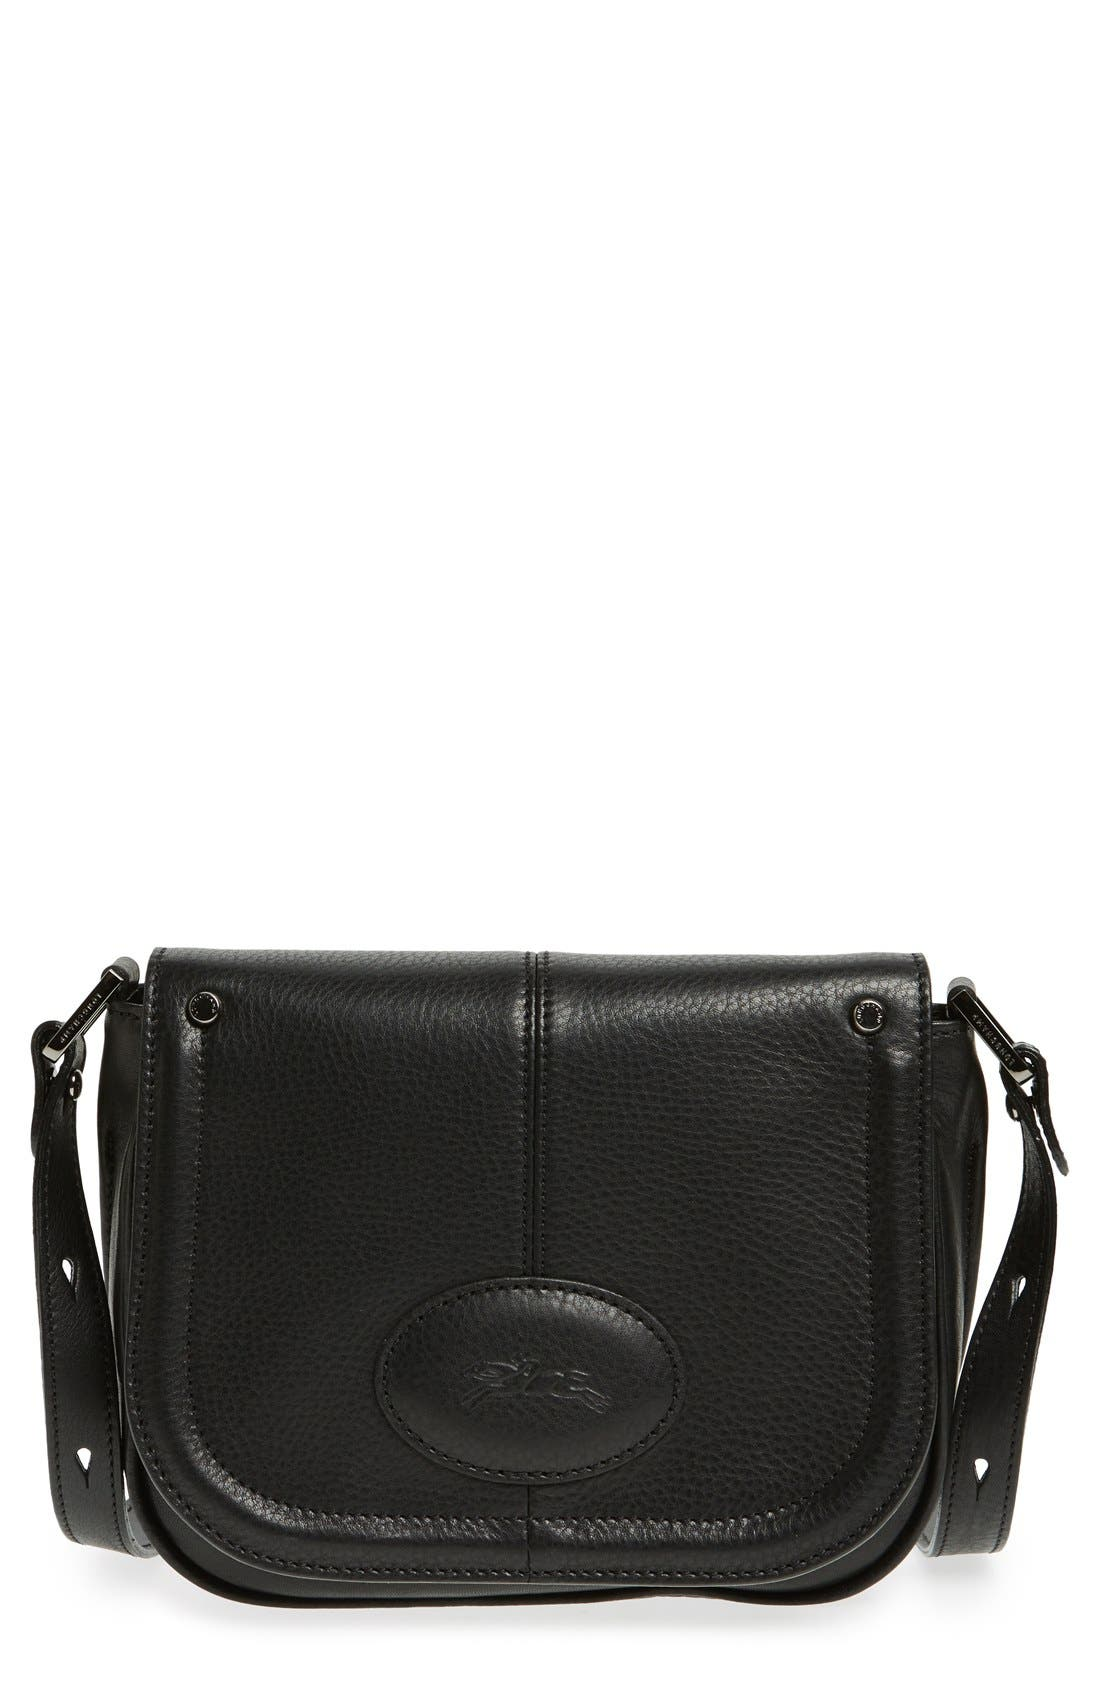 LONGCHAMP 'Small Mystery' Leather Crossbody Bag